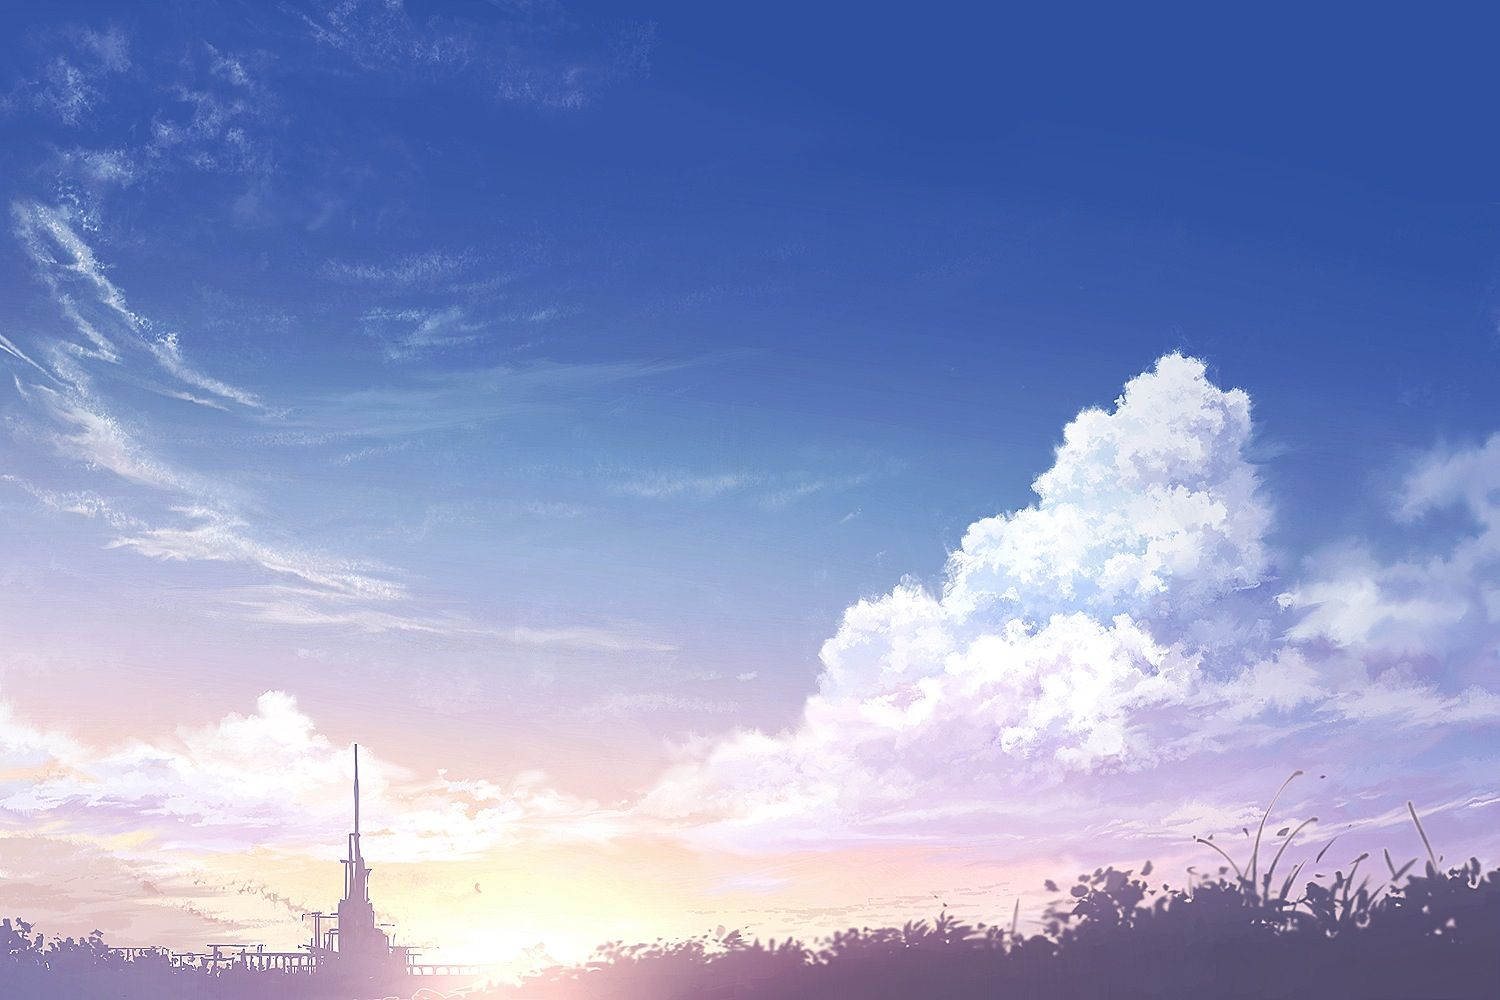 Anime background Anime scenery, Anime background, Clouds